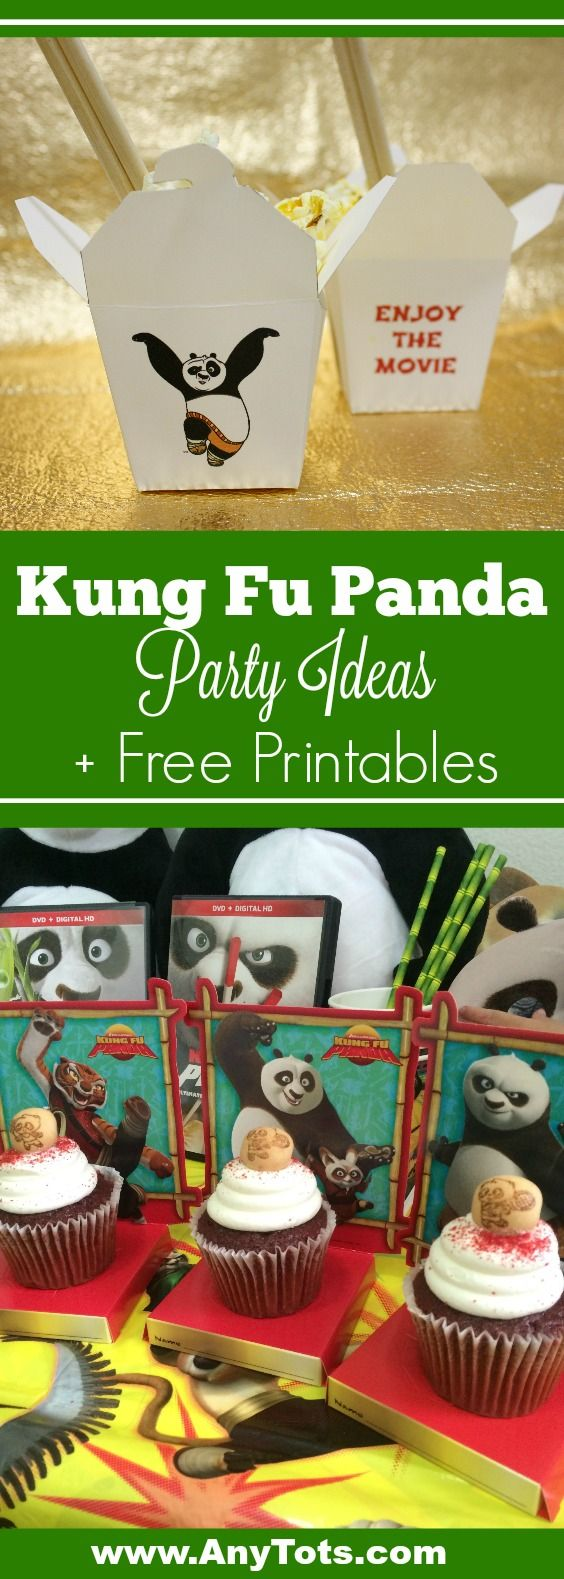 Kung Fu Panda Party Ideas and Kung Fu Panda Free Party Printable Chinese Take Out box and Kung Fu Panda Free Coloring Sheets. Kung fu panda masks, kung fu panda party supplies and more. Complete Kung Fu Panda Party Ideas on the blog, www.anytots.com